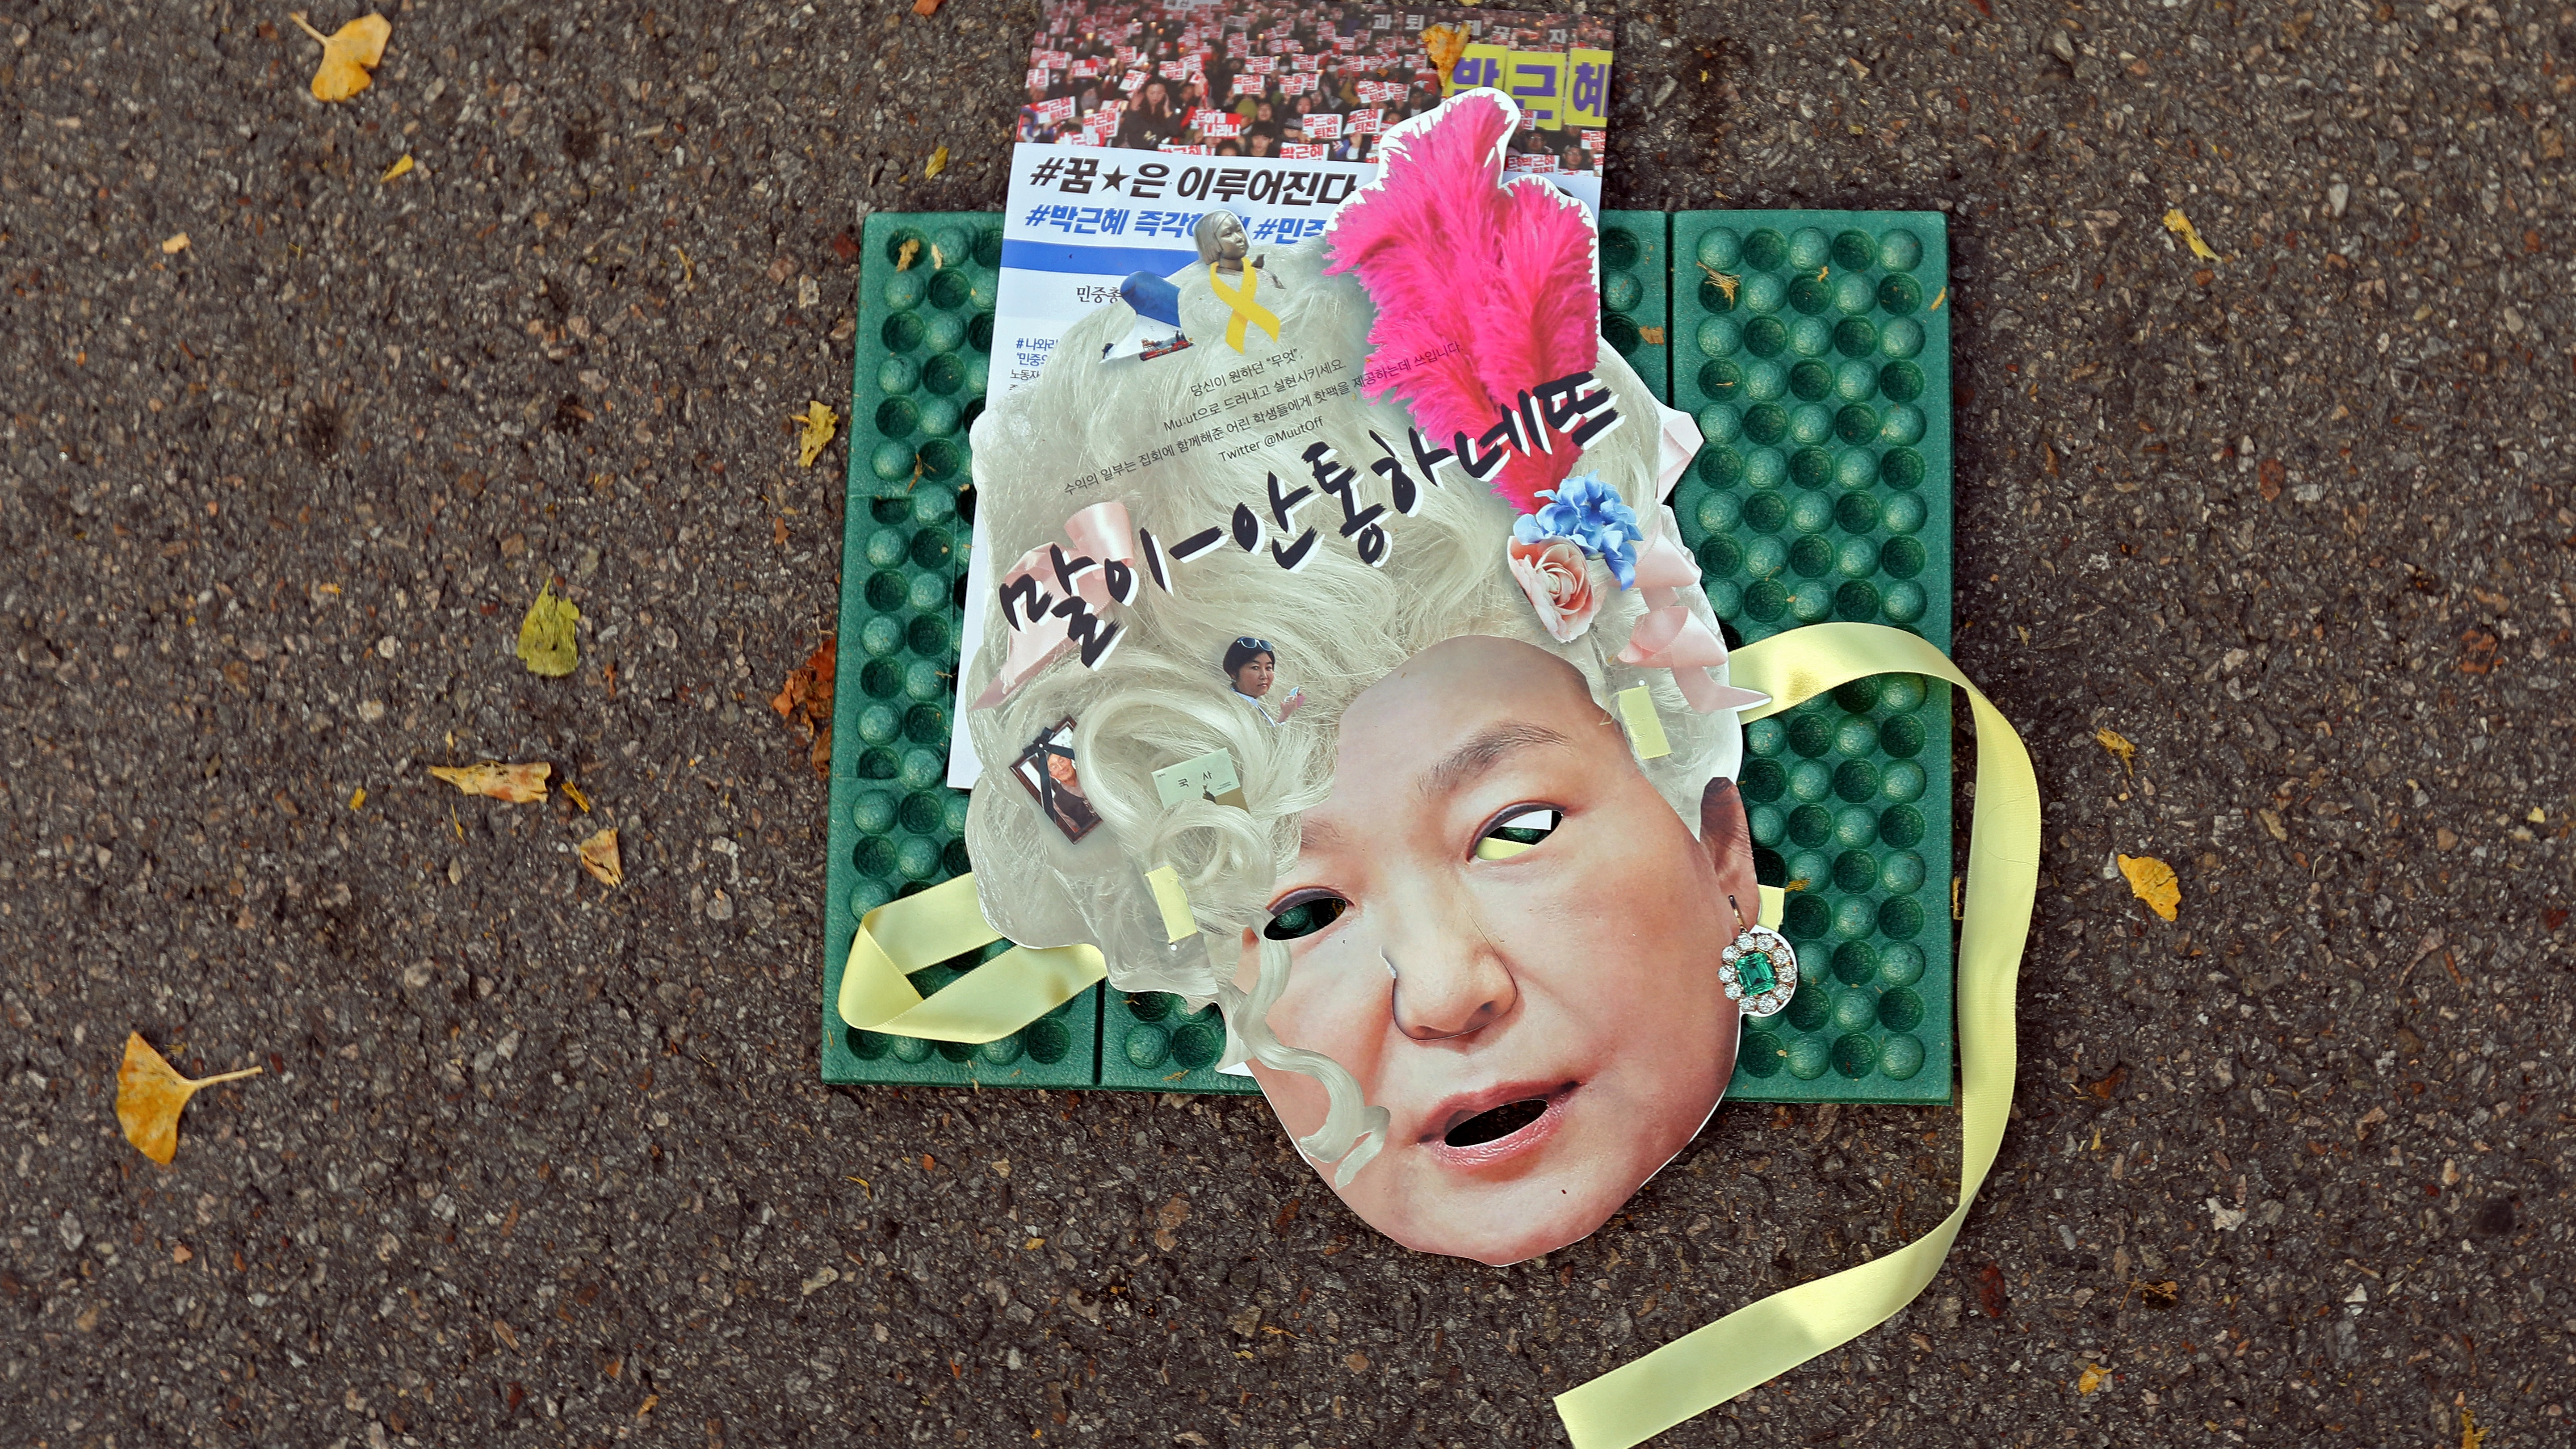 S. Korean President Named As A Criminal Suspect In Cronyism Scandal